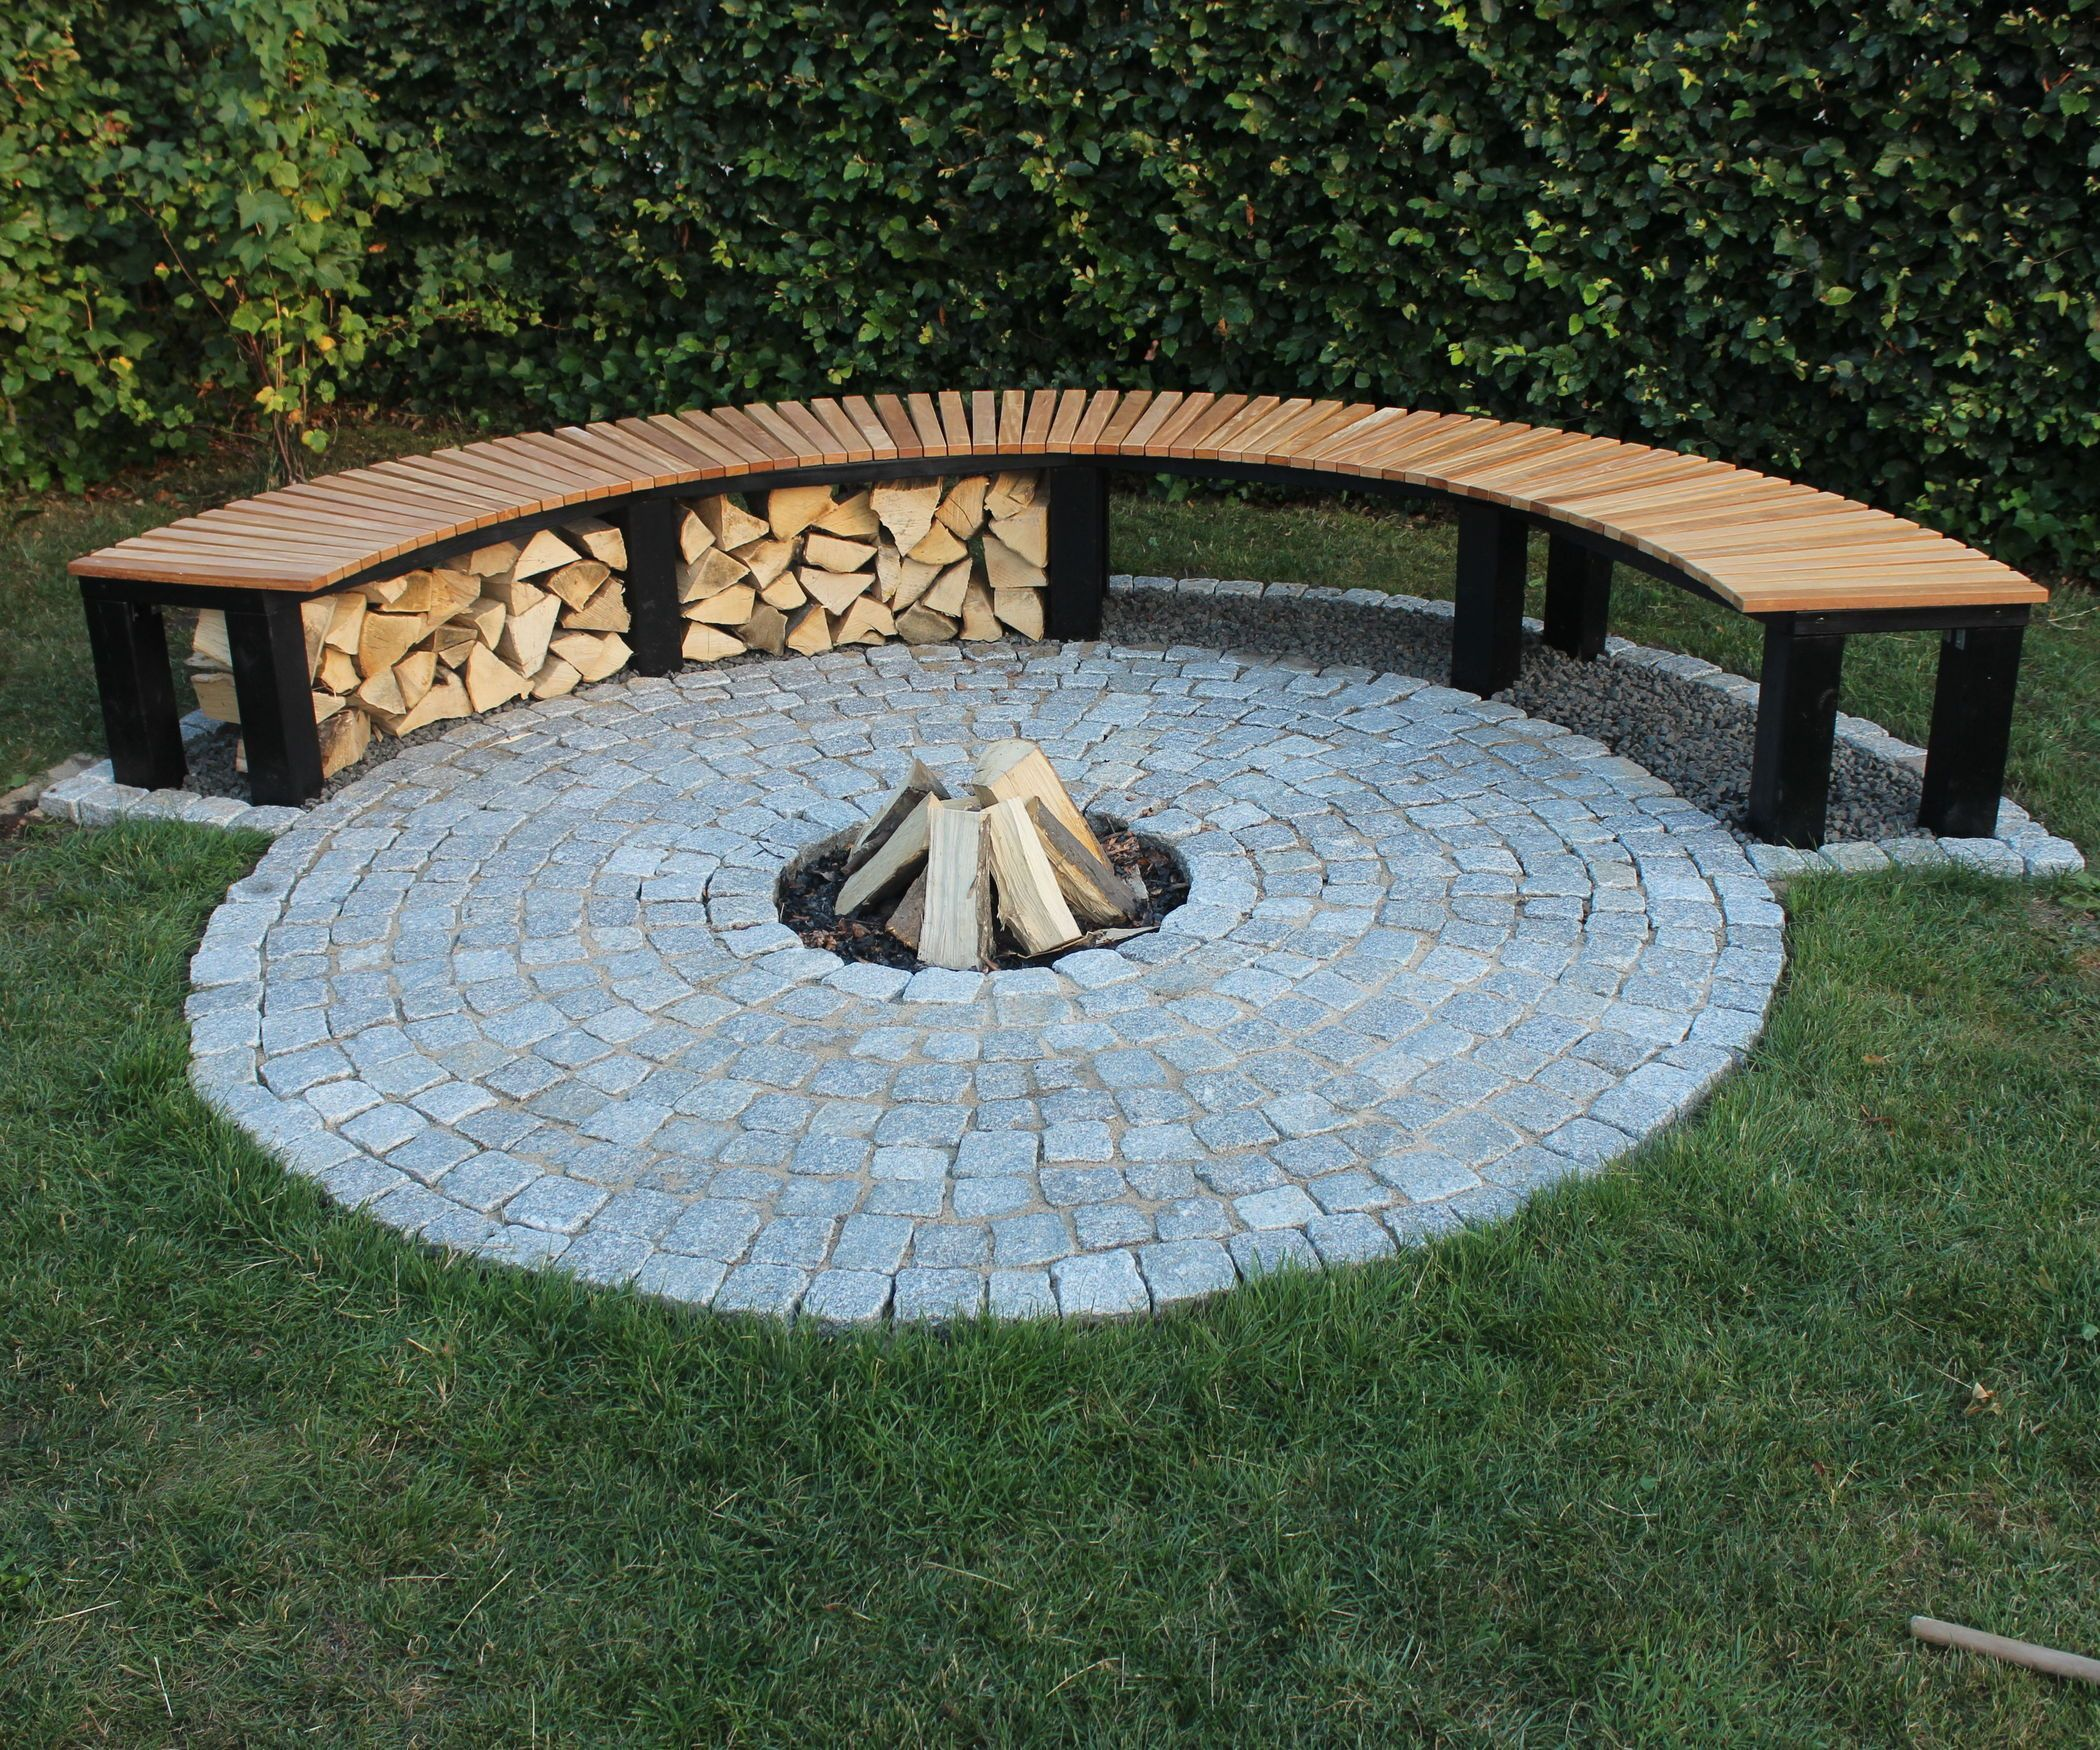 How to build a fireplace with a bench for your own garden ...